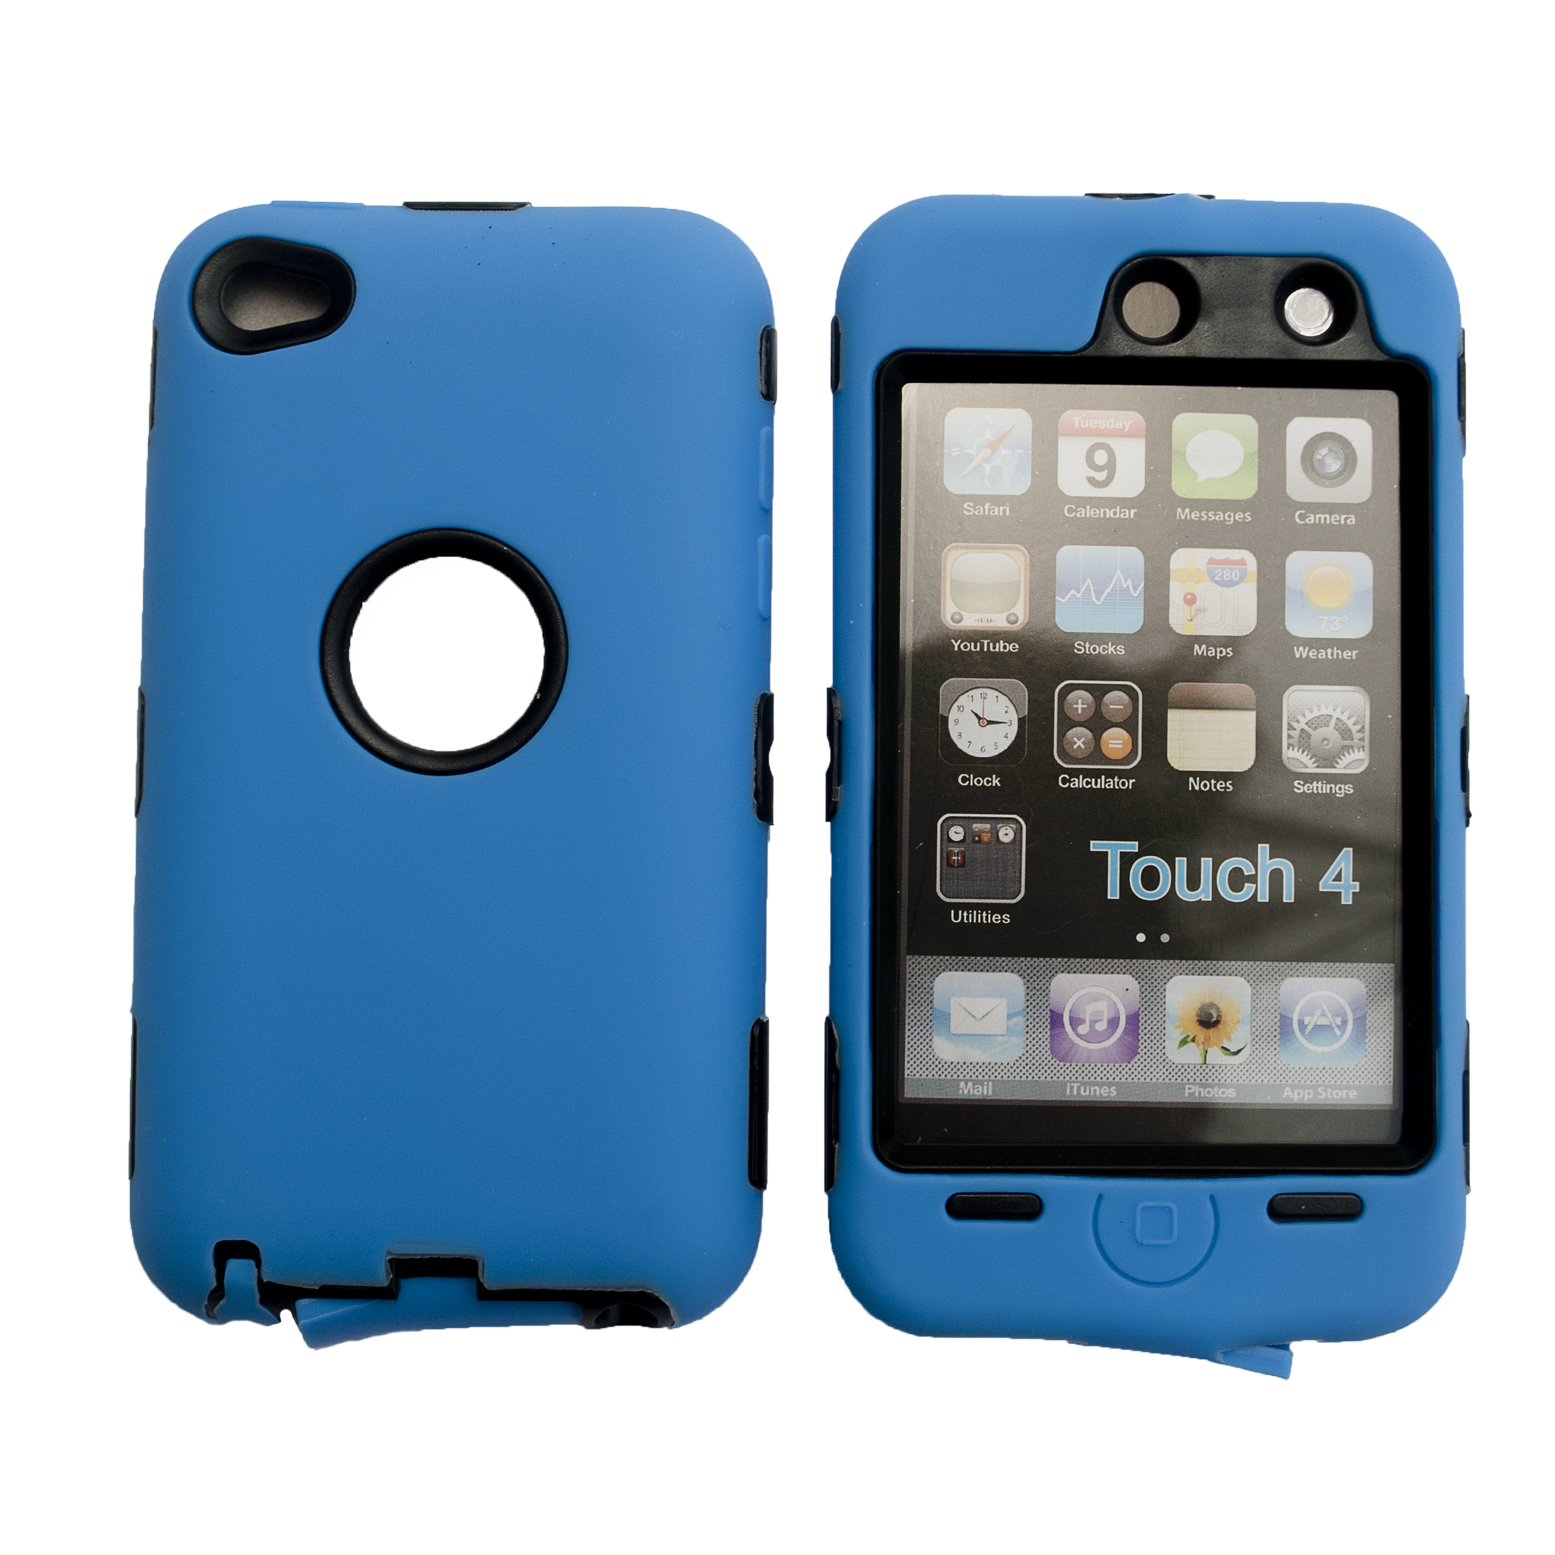 Deluxe Hybrid Hard Soft Case for iPod Touch 4 4G Screen Protector Cleaning Cloth eBay